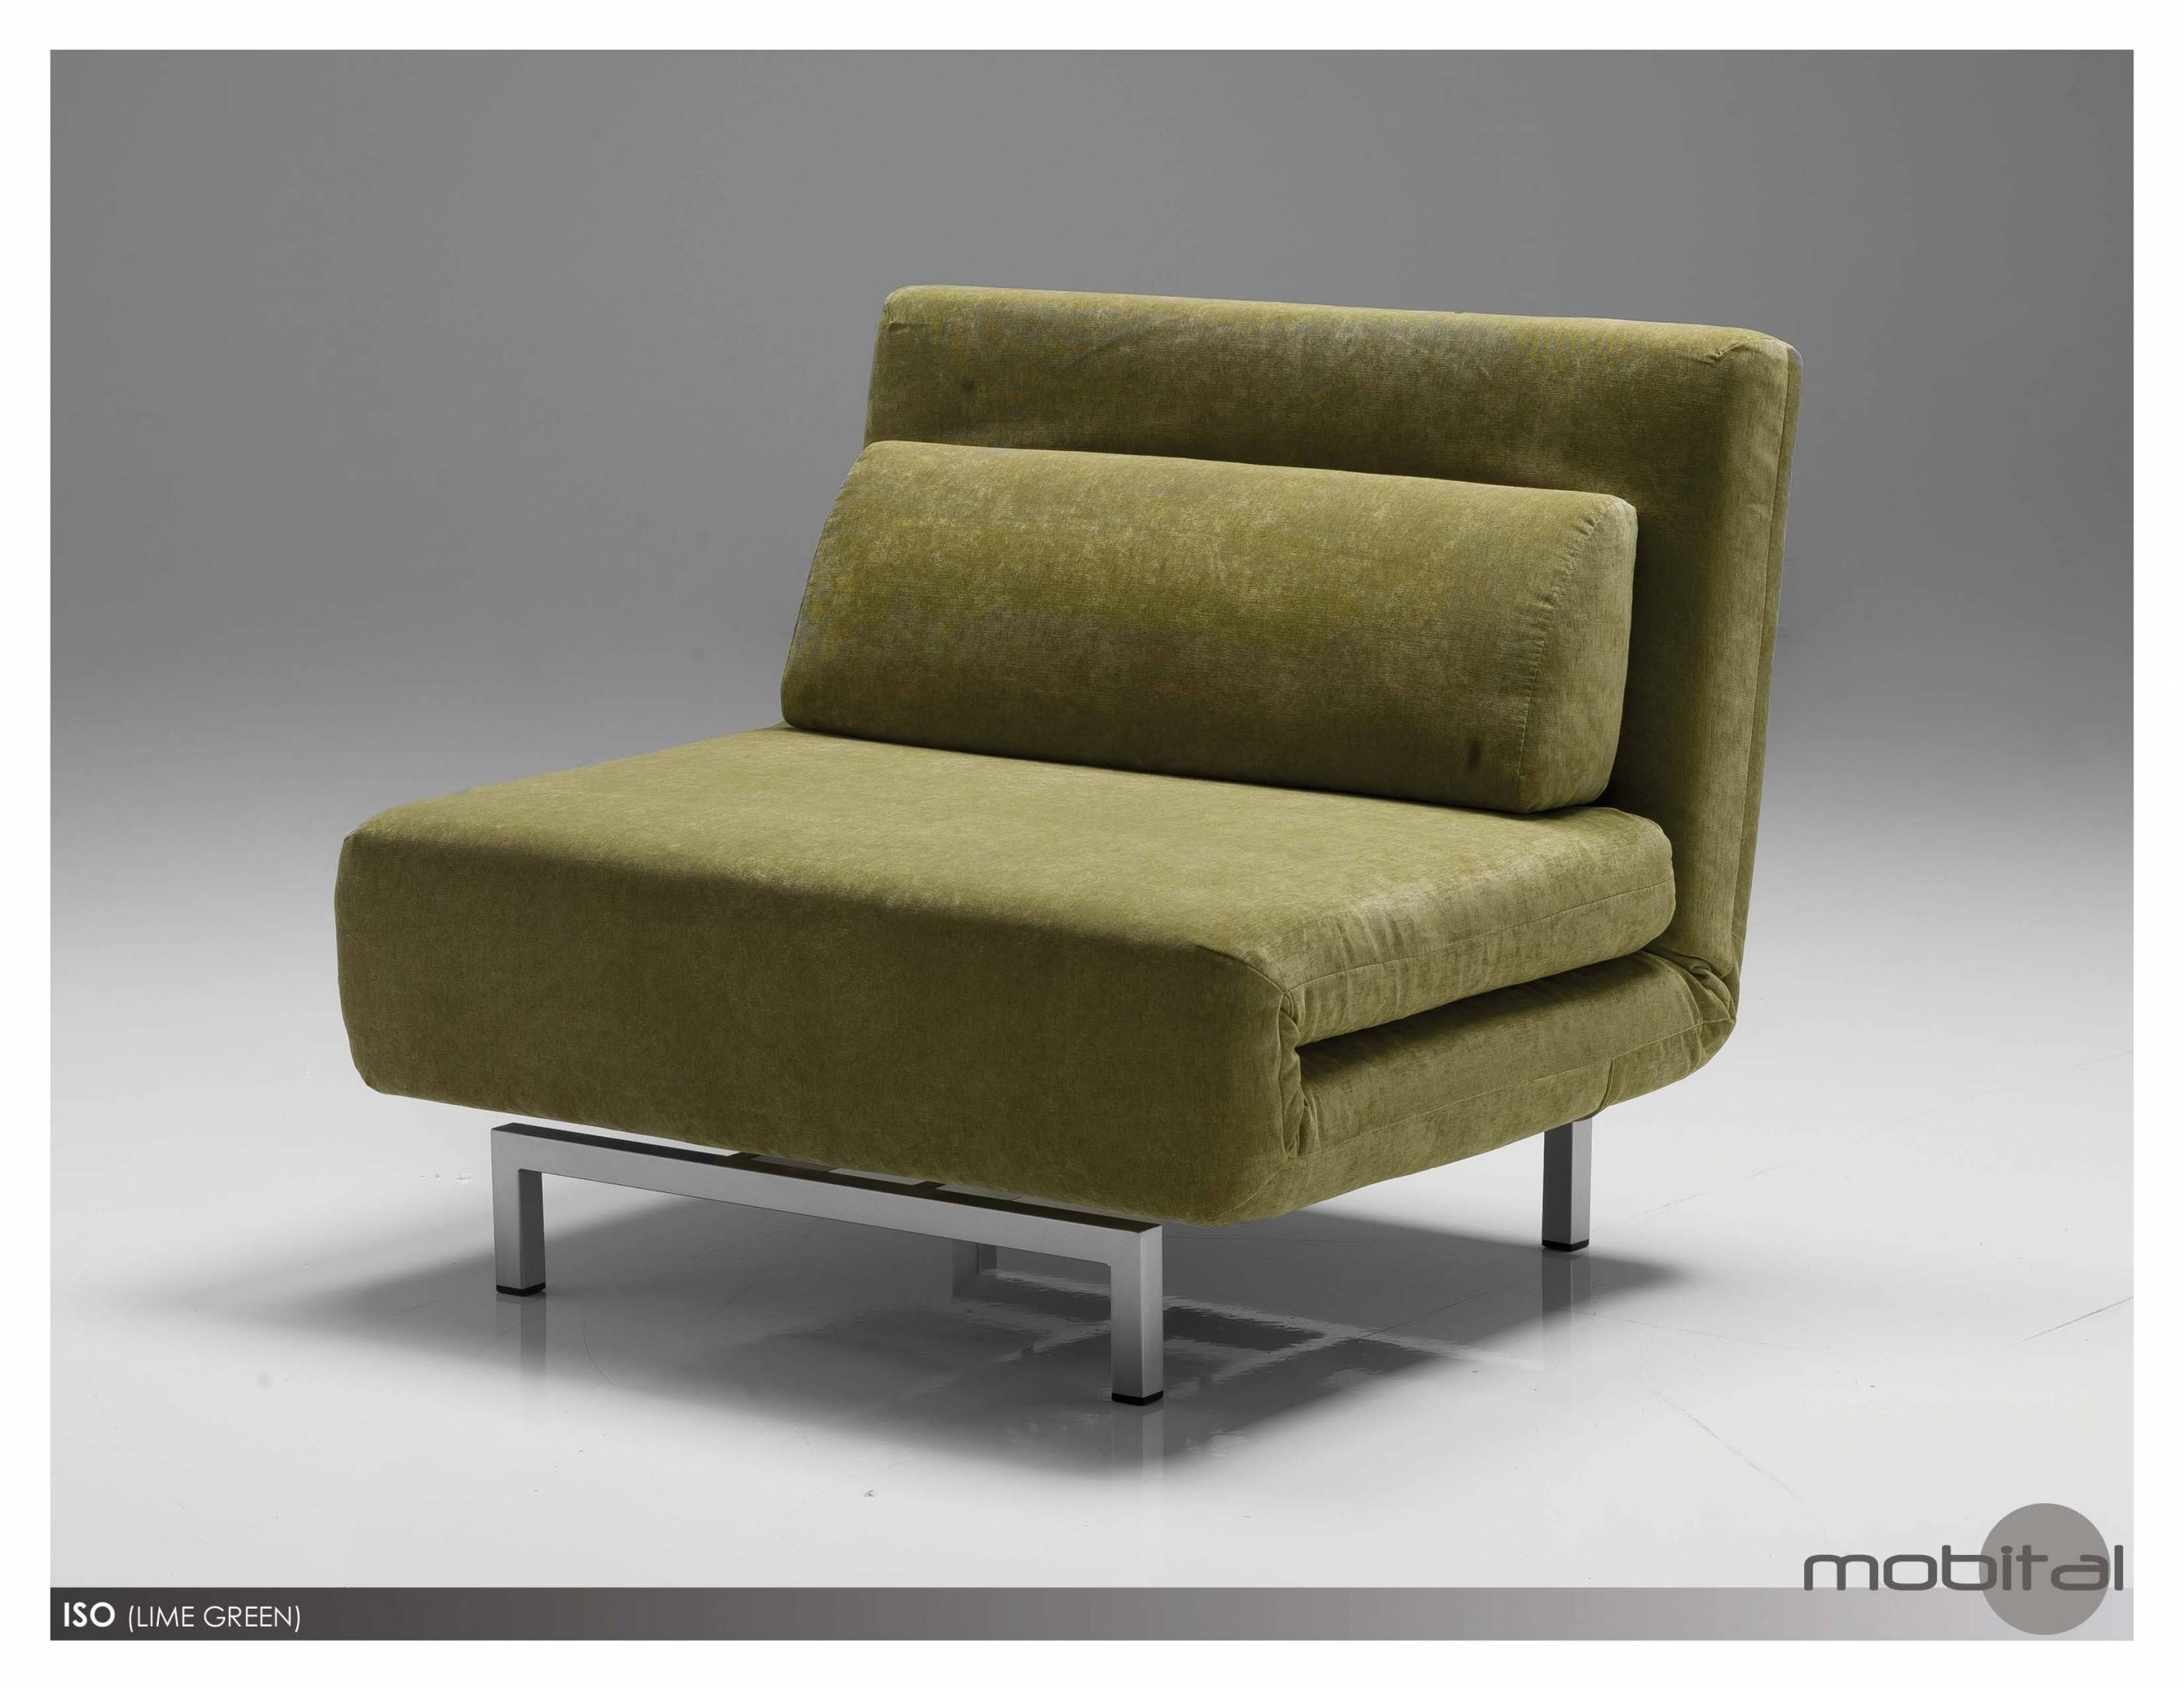 Elegant Single Sofa Bed Chairs - Merciarescue with regard to Single Chair Sofa Beds (Image 11 of 30)